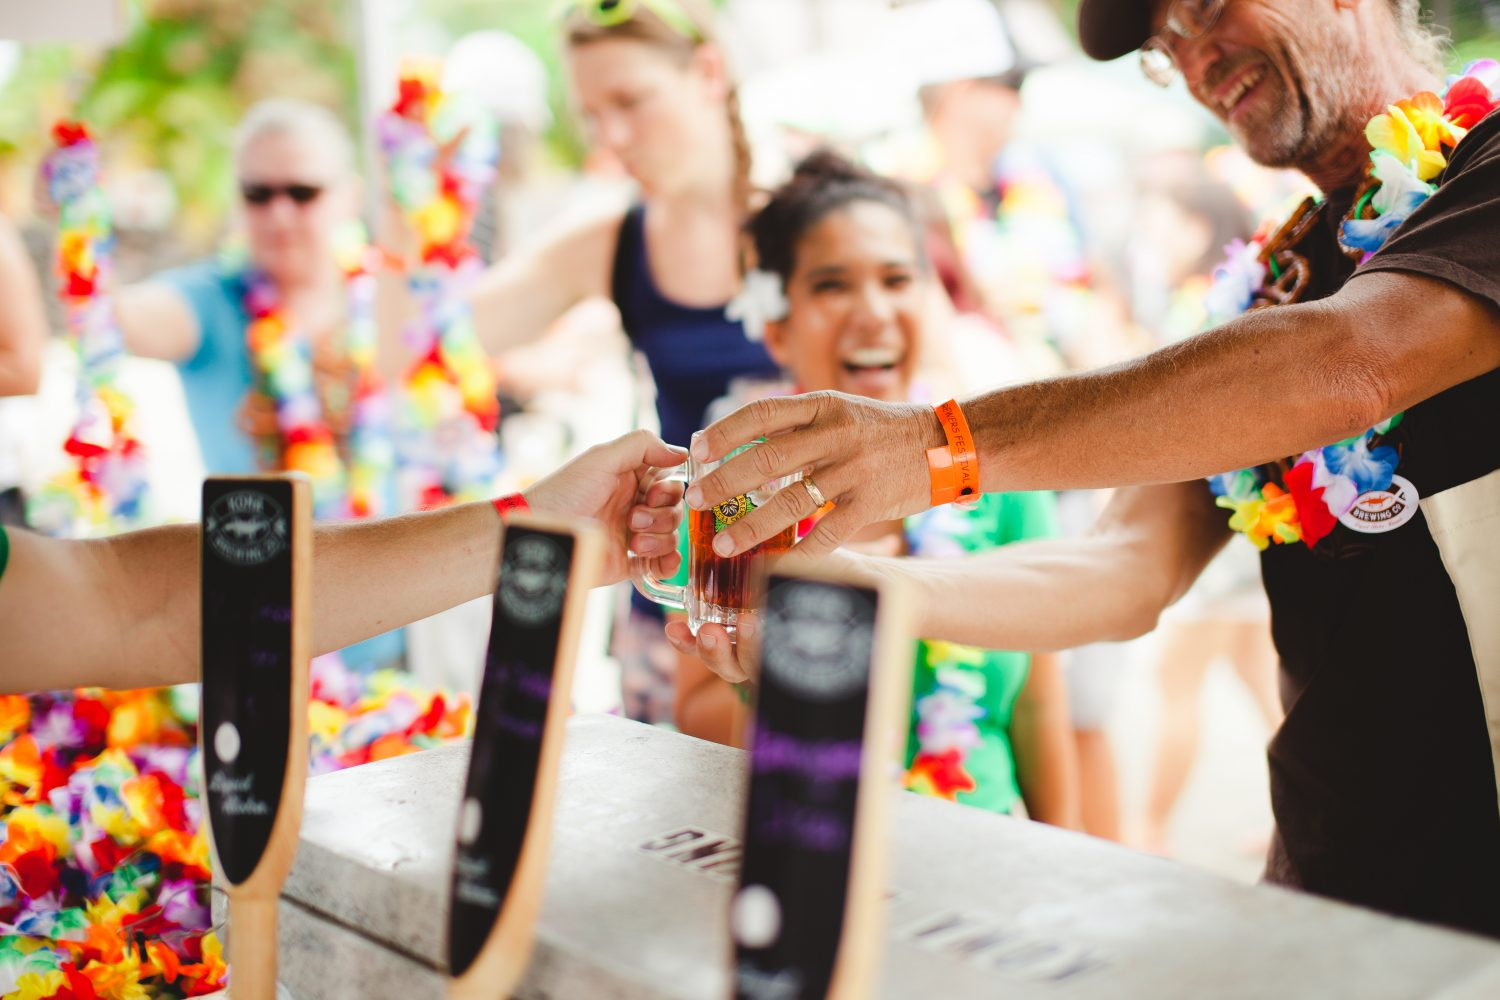 kona brewers festival people grabbing glasses of beer from enthusiastic pourers. credit goes to the kona brewers festival and couple cups for this photo